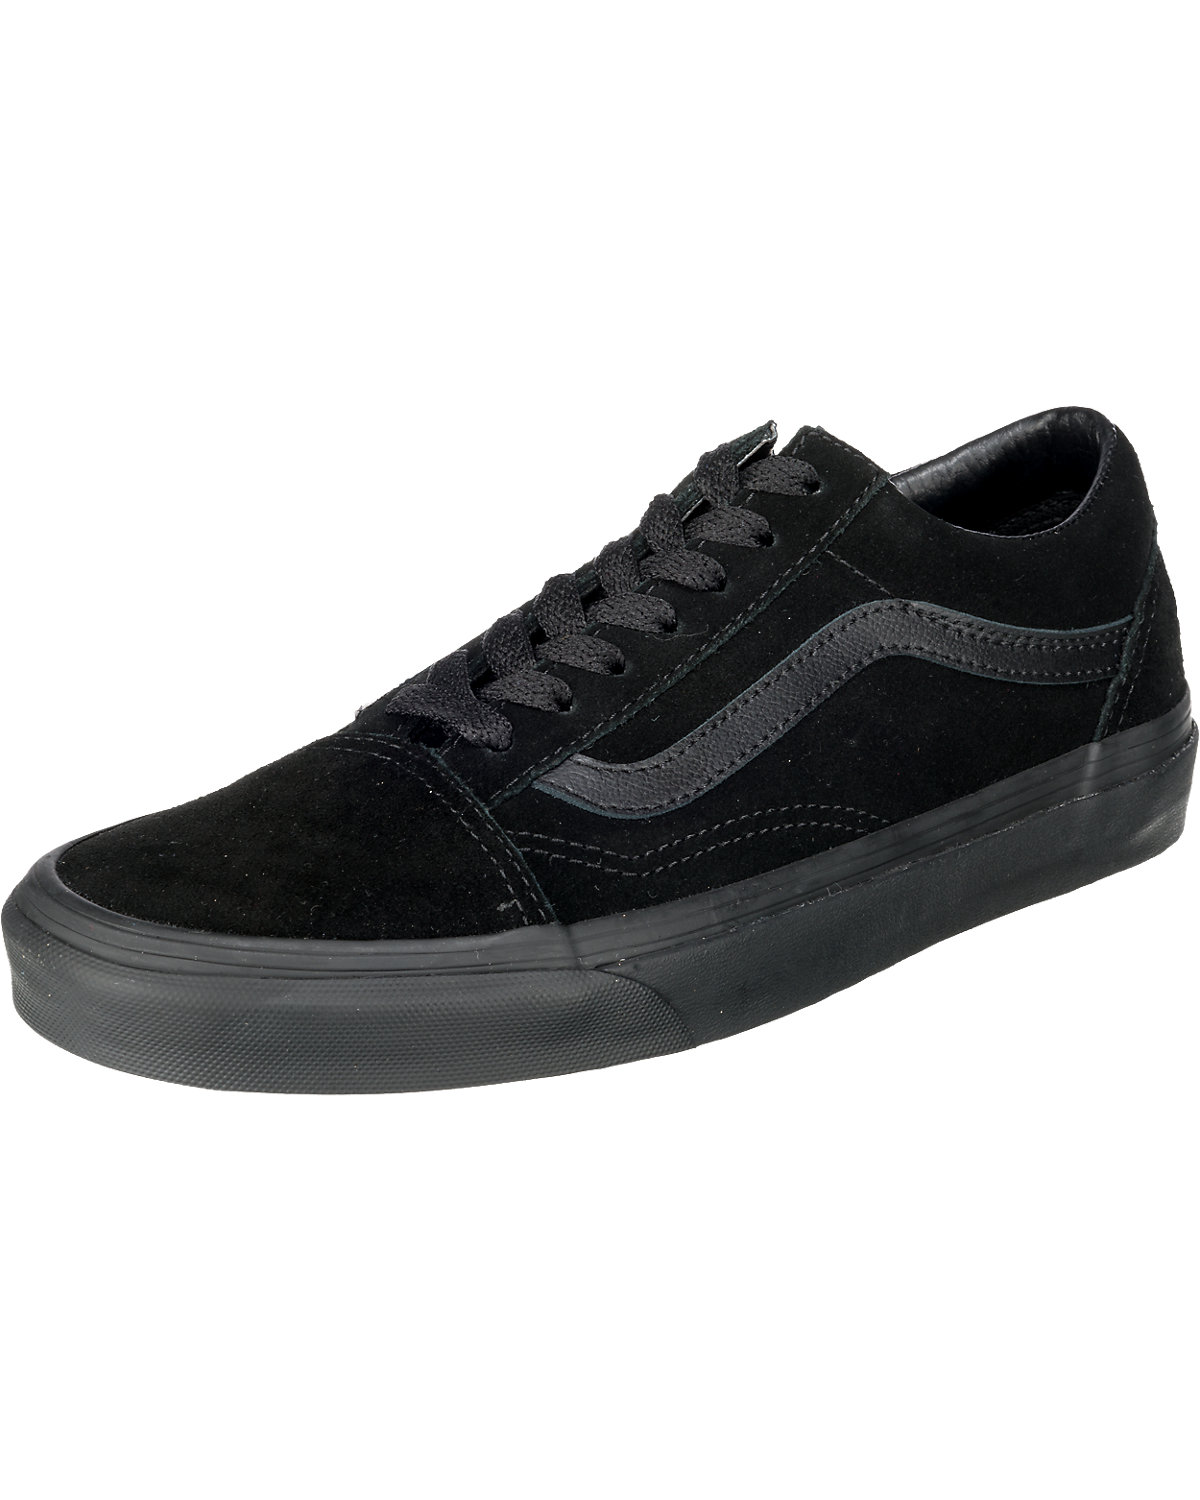 VANS, UA Old Sneakers Skool Sneakers Old Low, schwarz a34c56